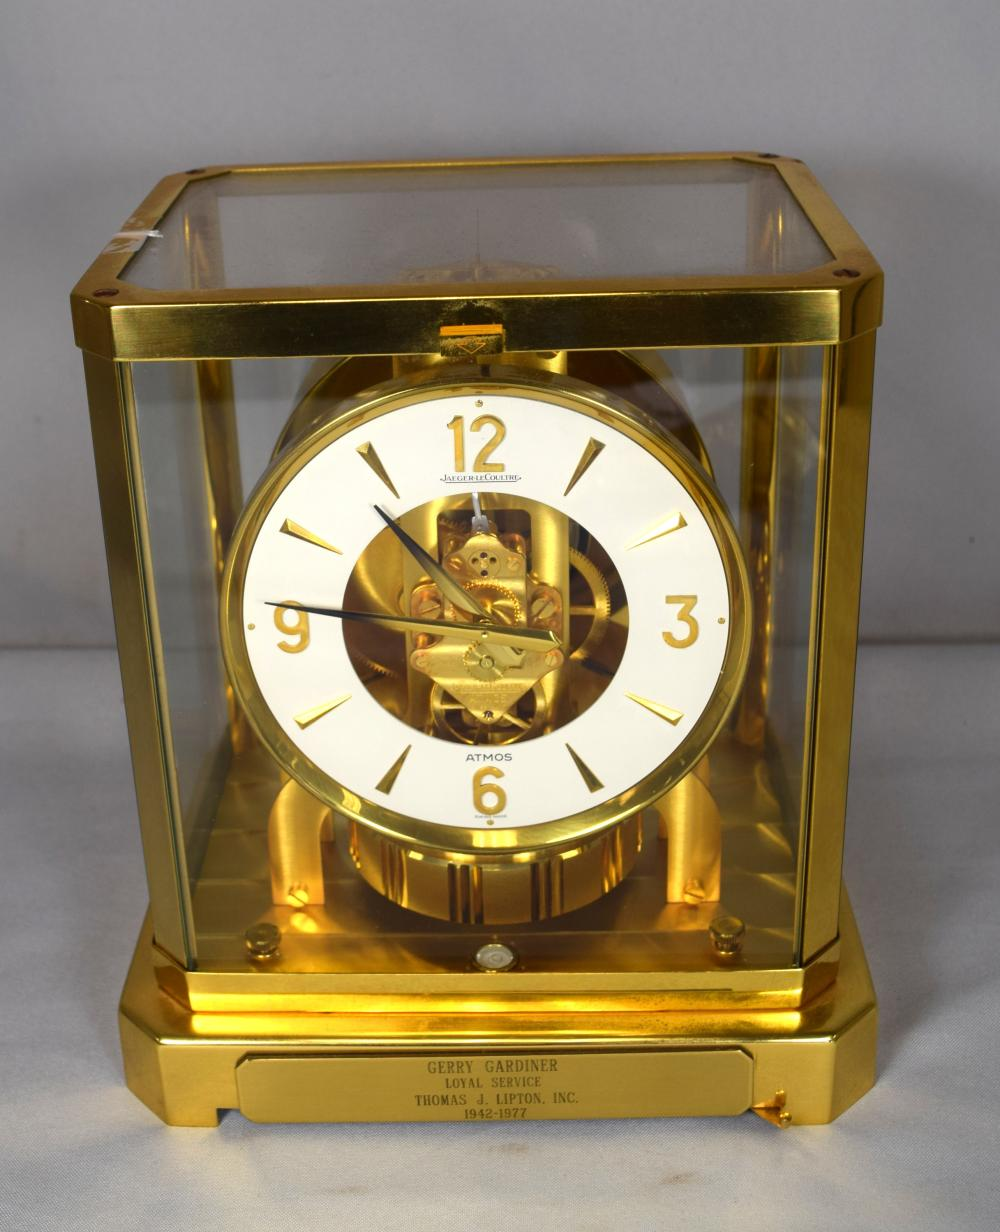 LE COULTRE ATMOS SWISS CLOCK: